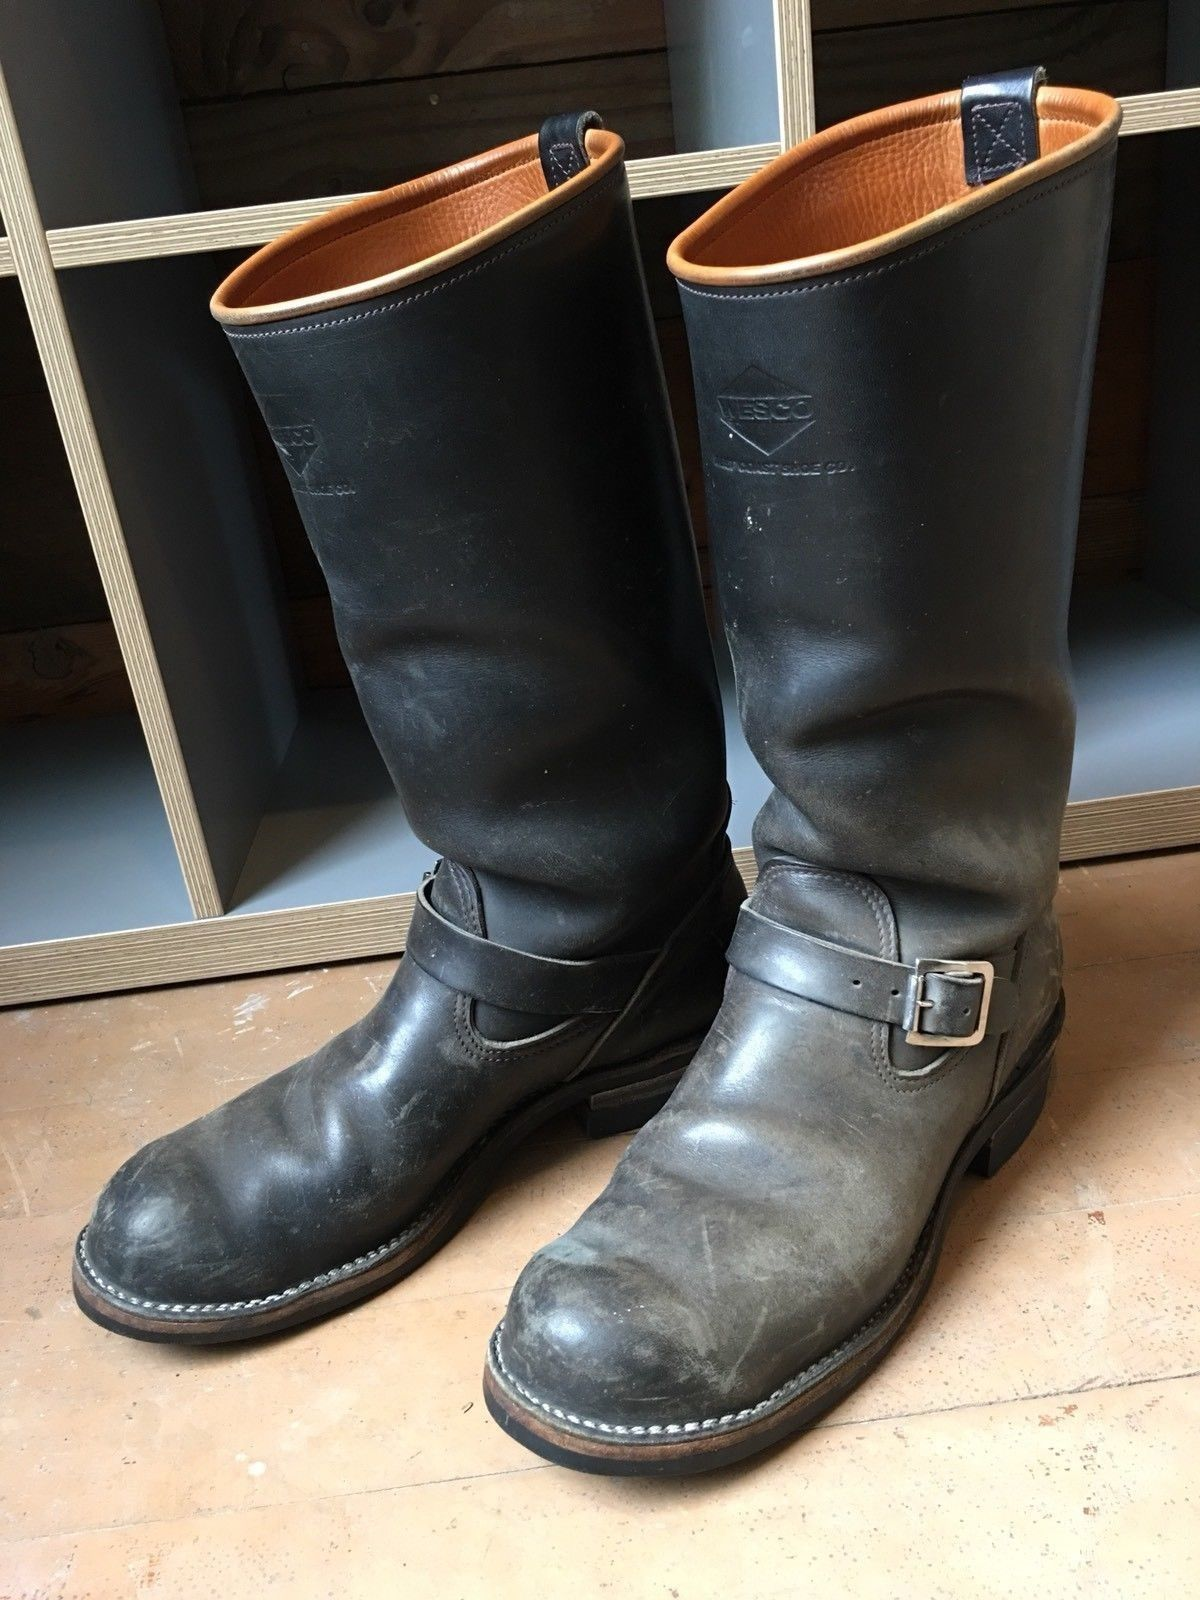 Toilettenbürste Tier Wesco Buckskin Lined Boss Boots Great Worn Condition Ebay